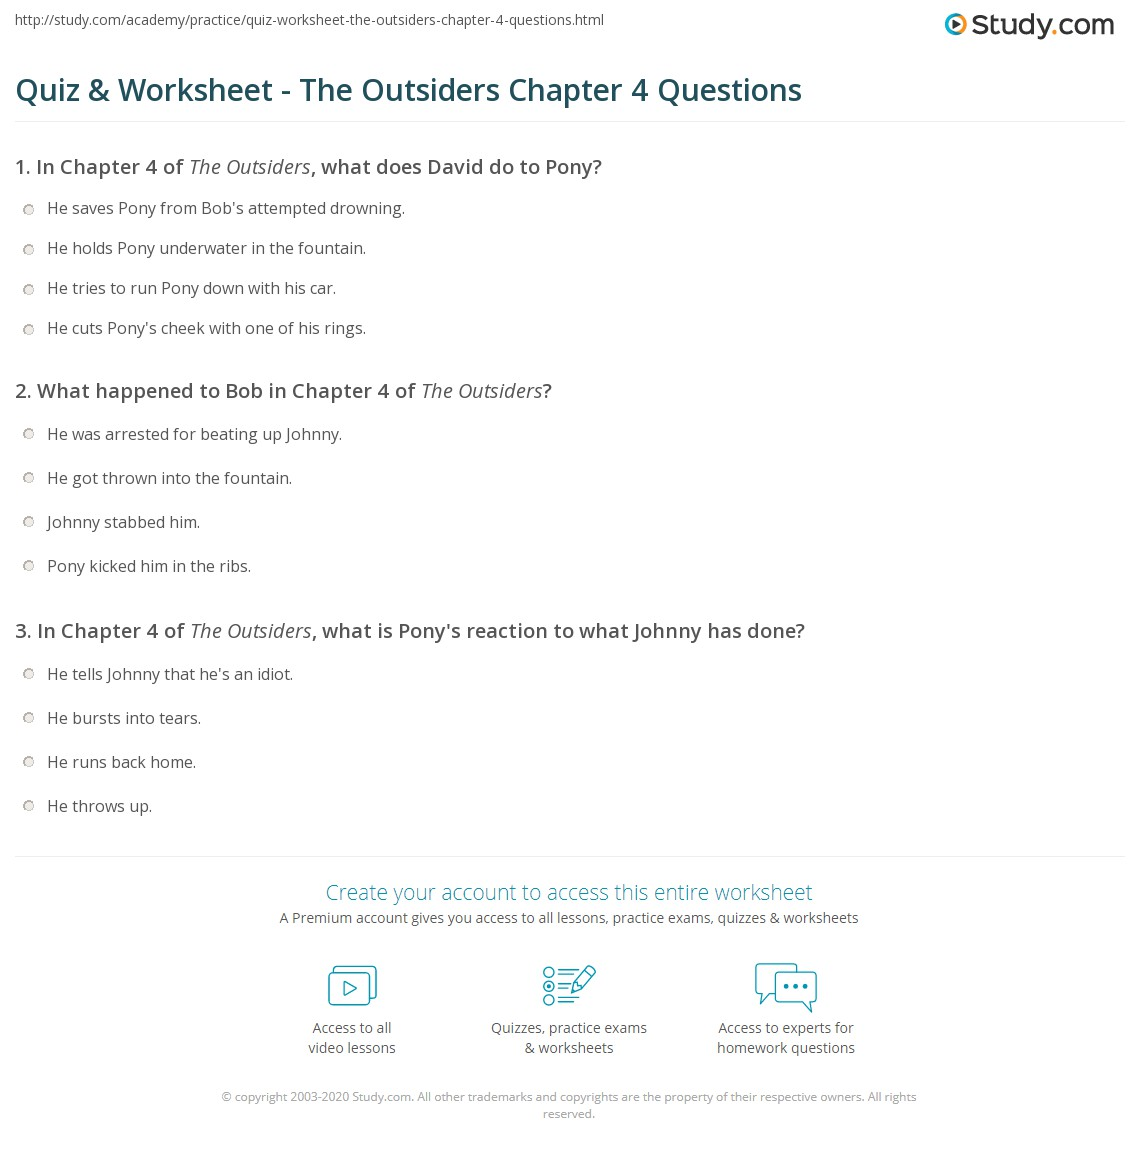 quiz worksheet the outsiders chapter 4 questions. Black Bedroom Furniture Sets. Home Design Ideas